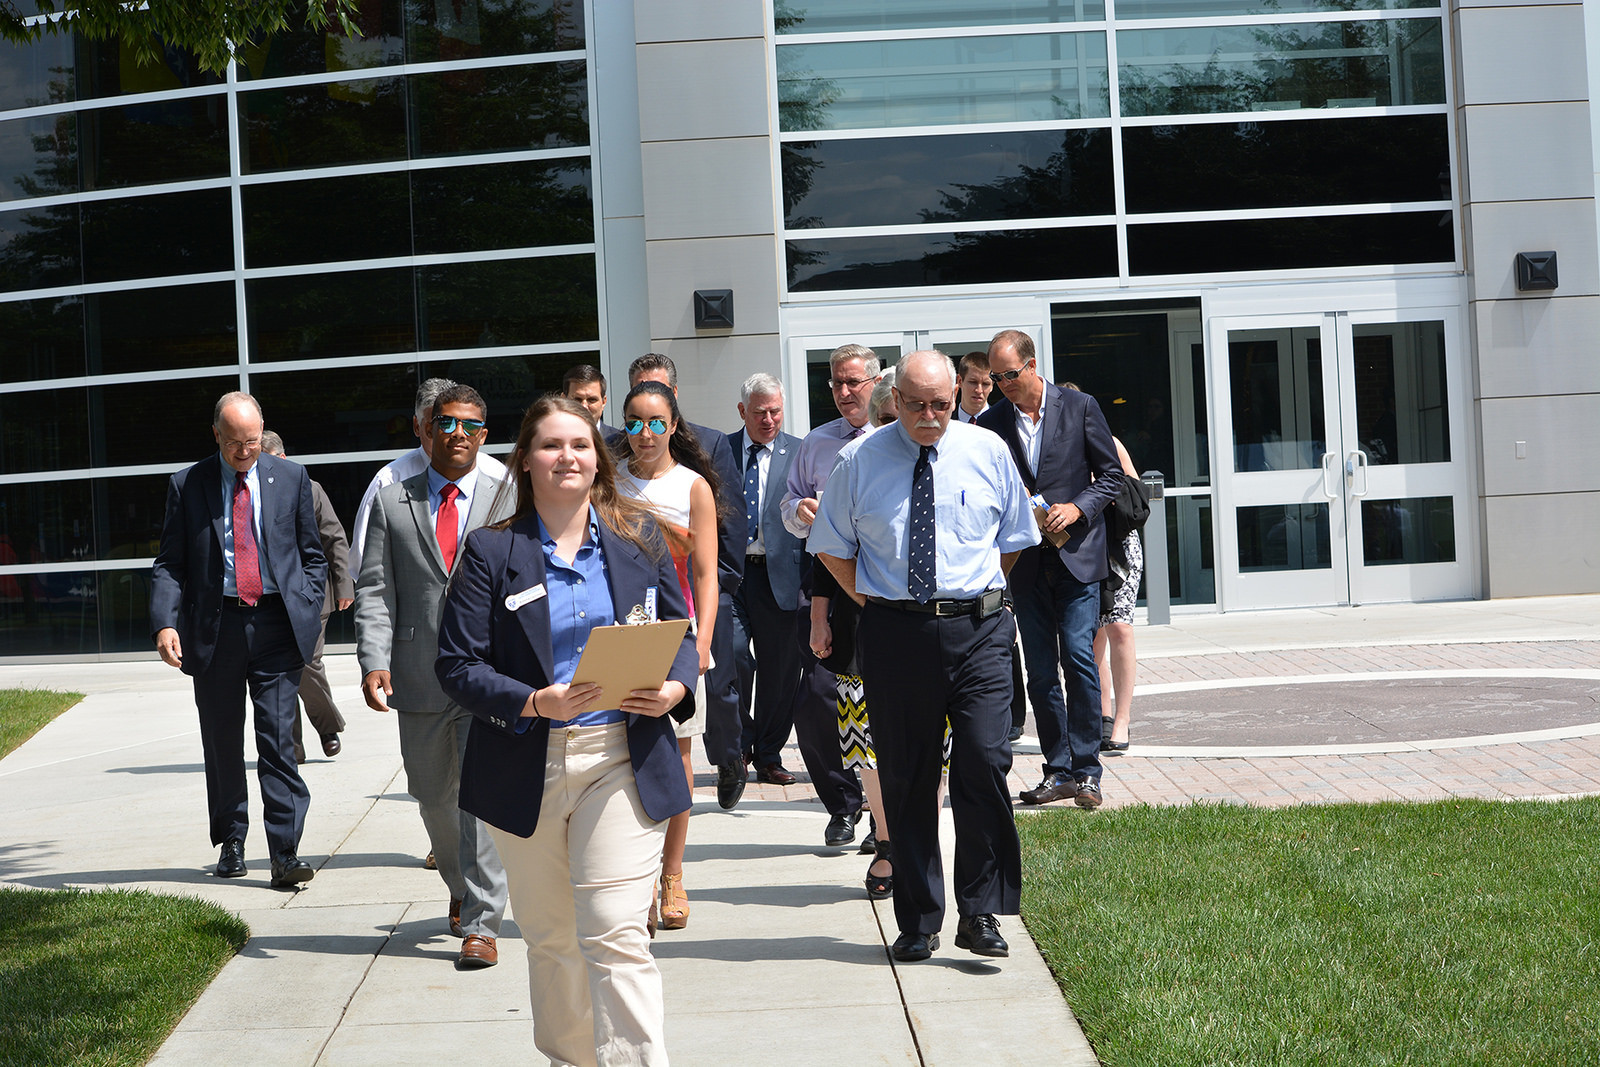 Student Emma Lerchen leads members of the Penn State Board of Trustees and University administrators on a tour of the Penn State Harrisburg campus.